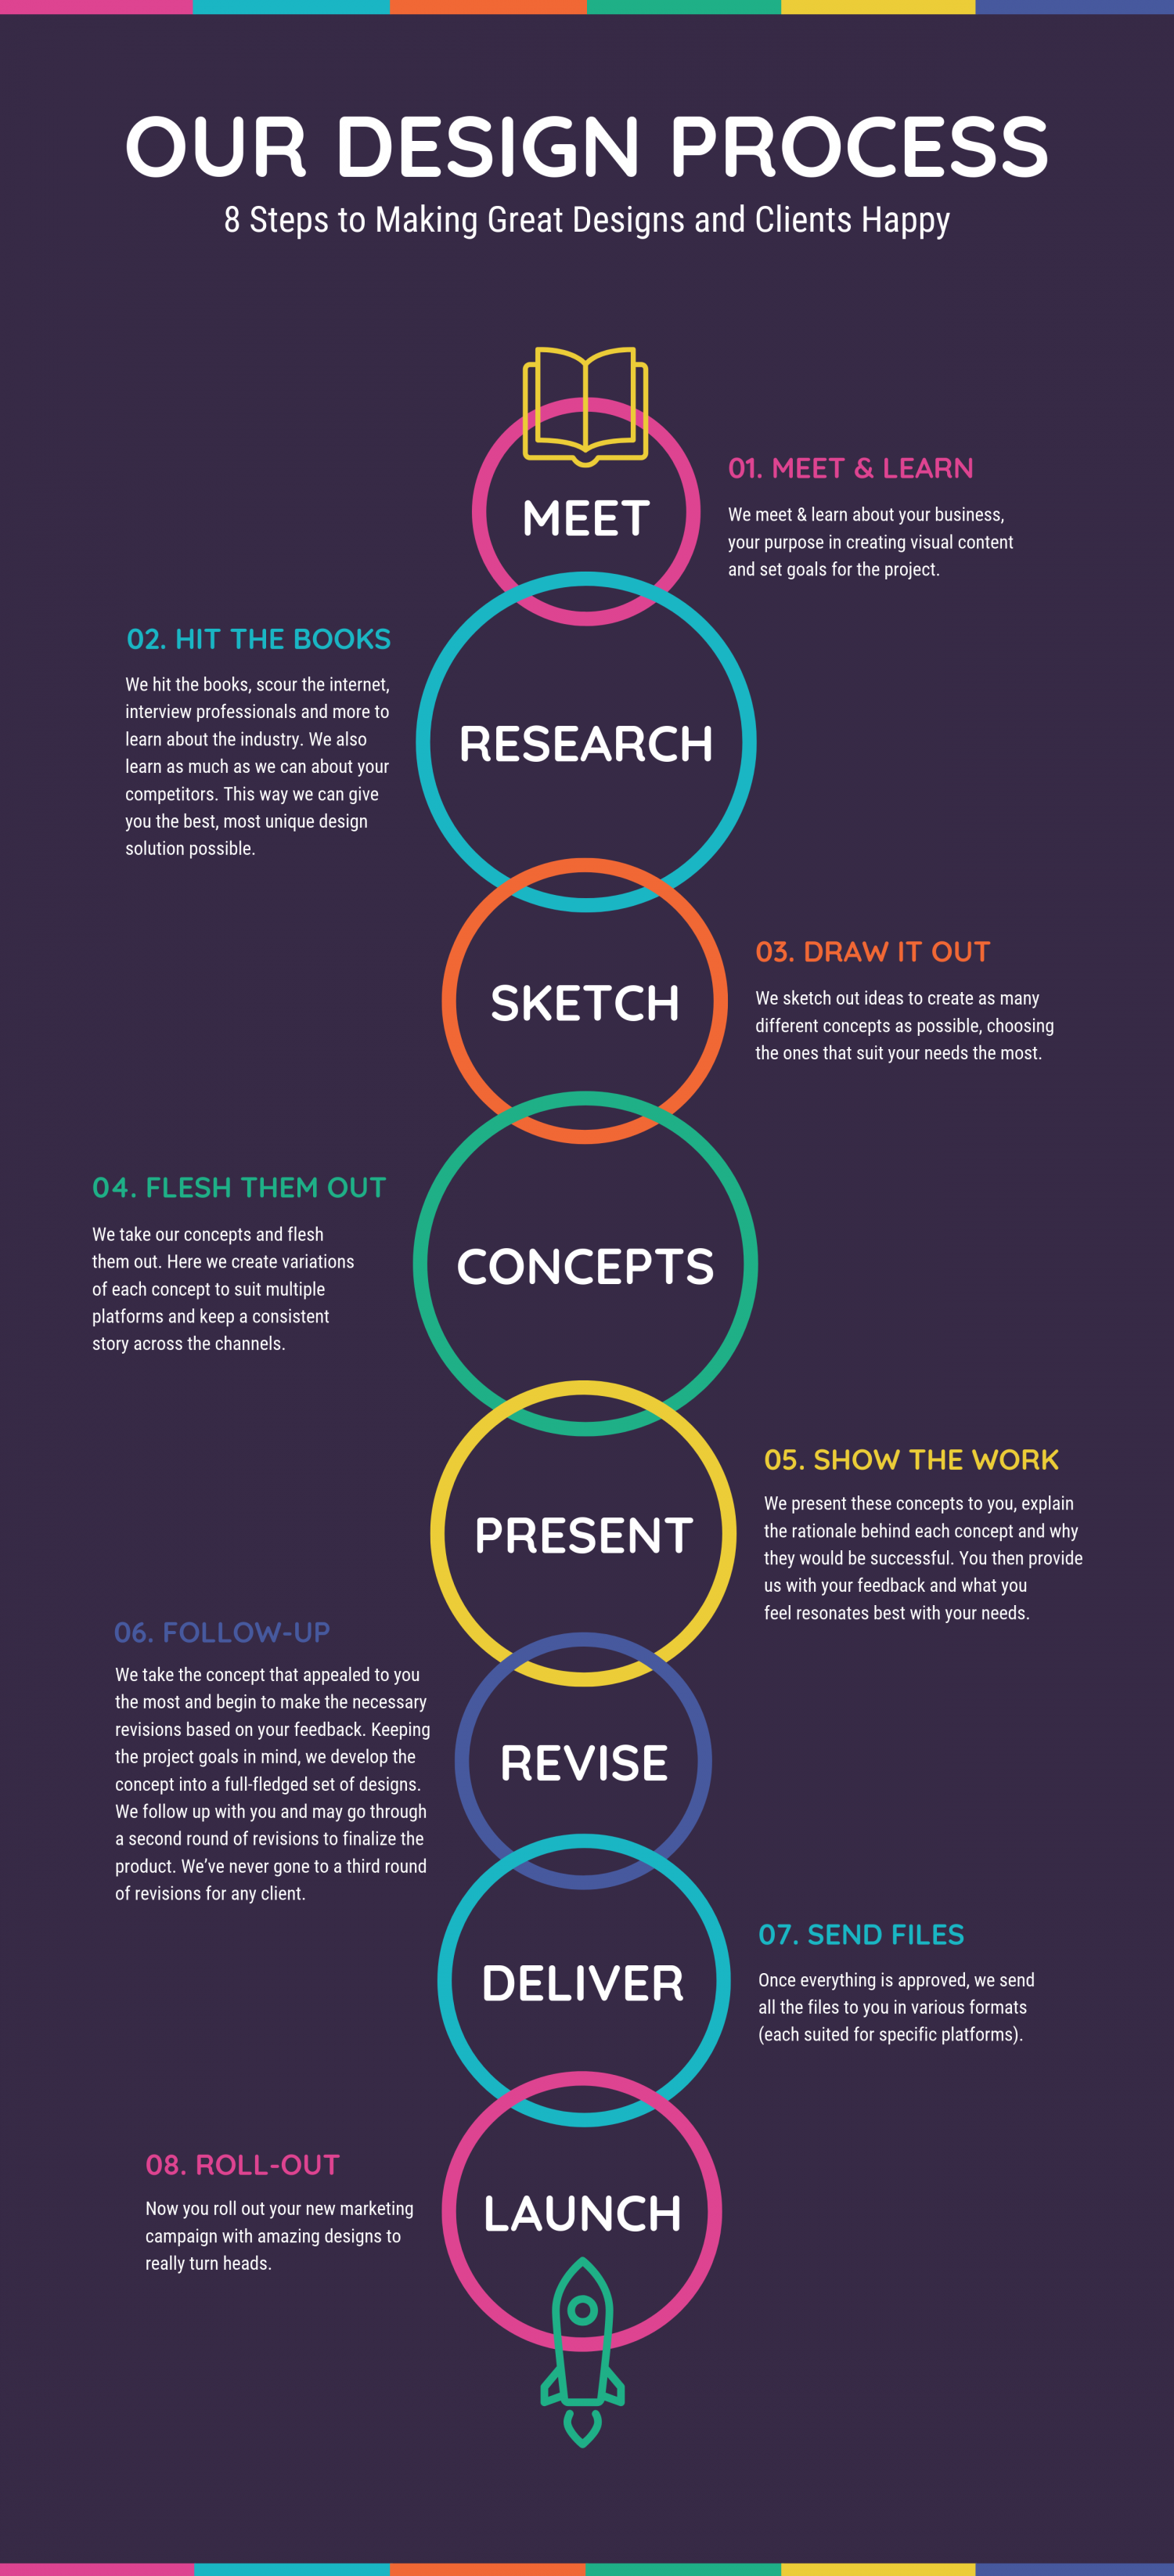 Our Design Process Infographic Visual Ly